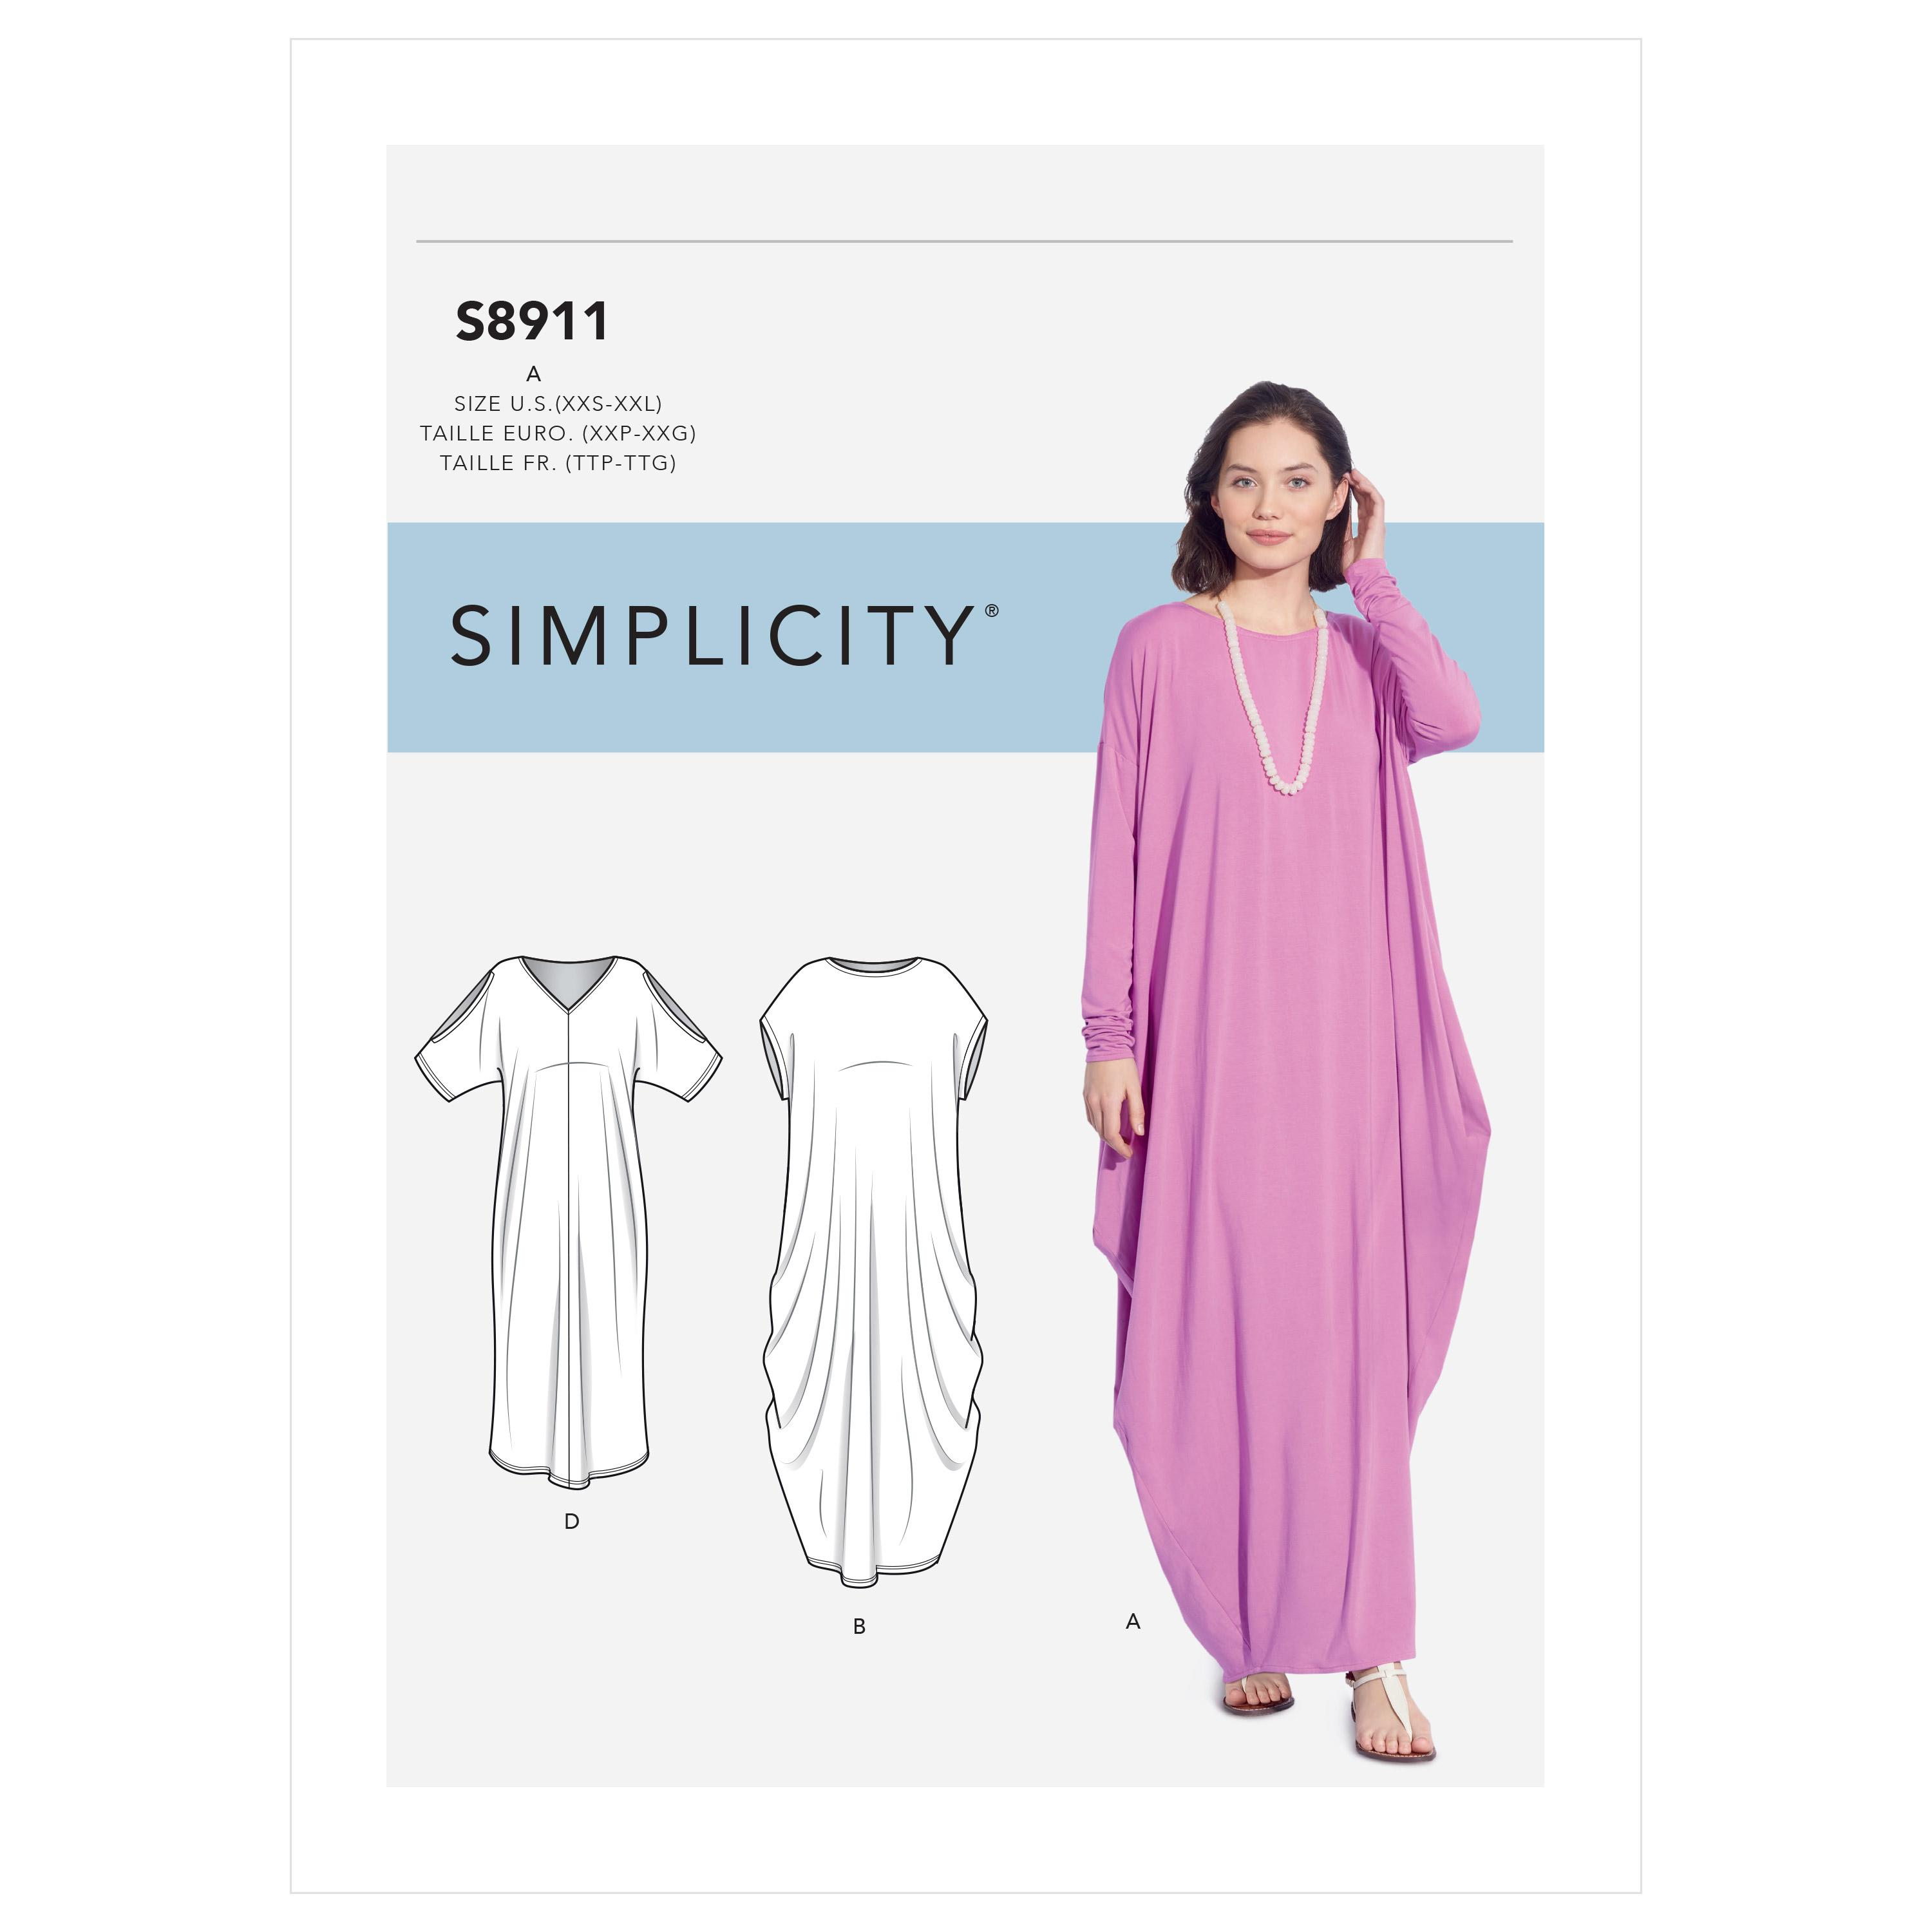 Simplicity S8911 Misses' Knit Caftans